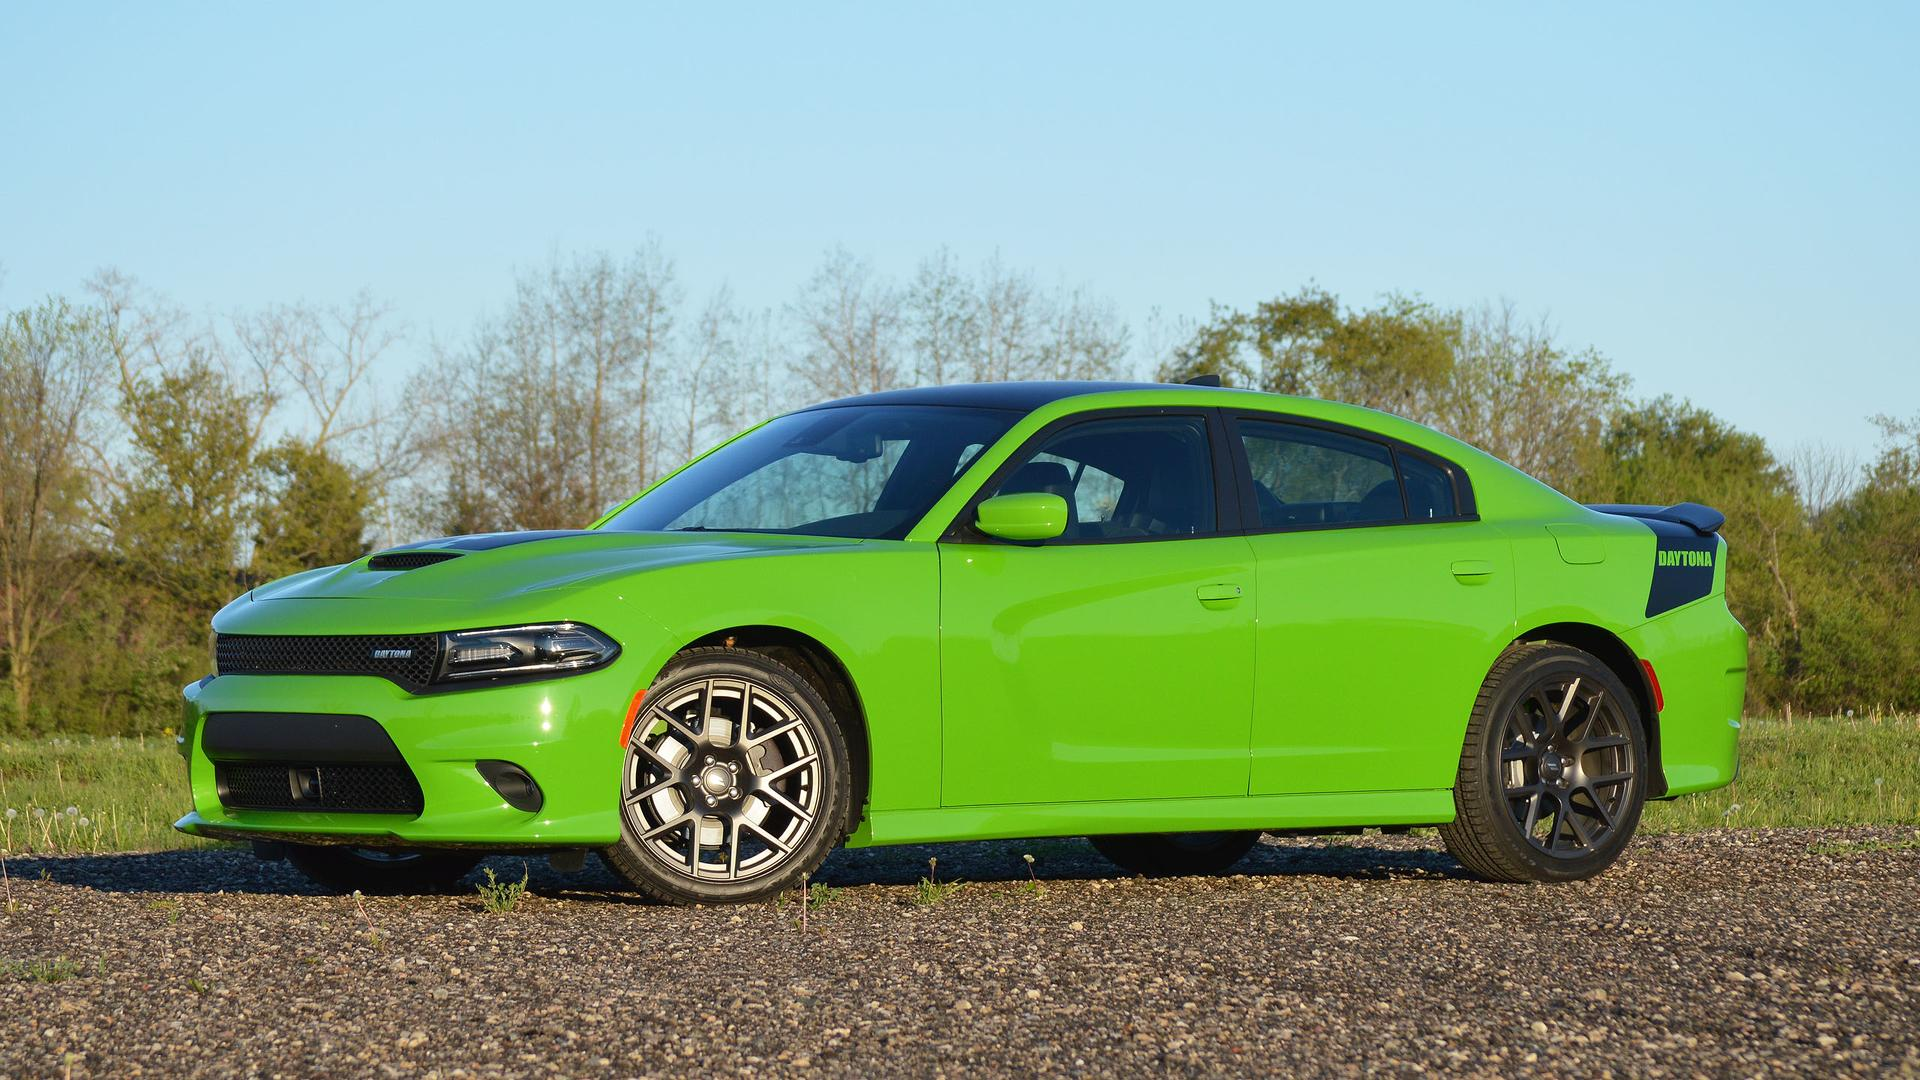 Dodge Charger Hellcat Price >> 2017 Dodge Charger Daytona Review: Family Muscle